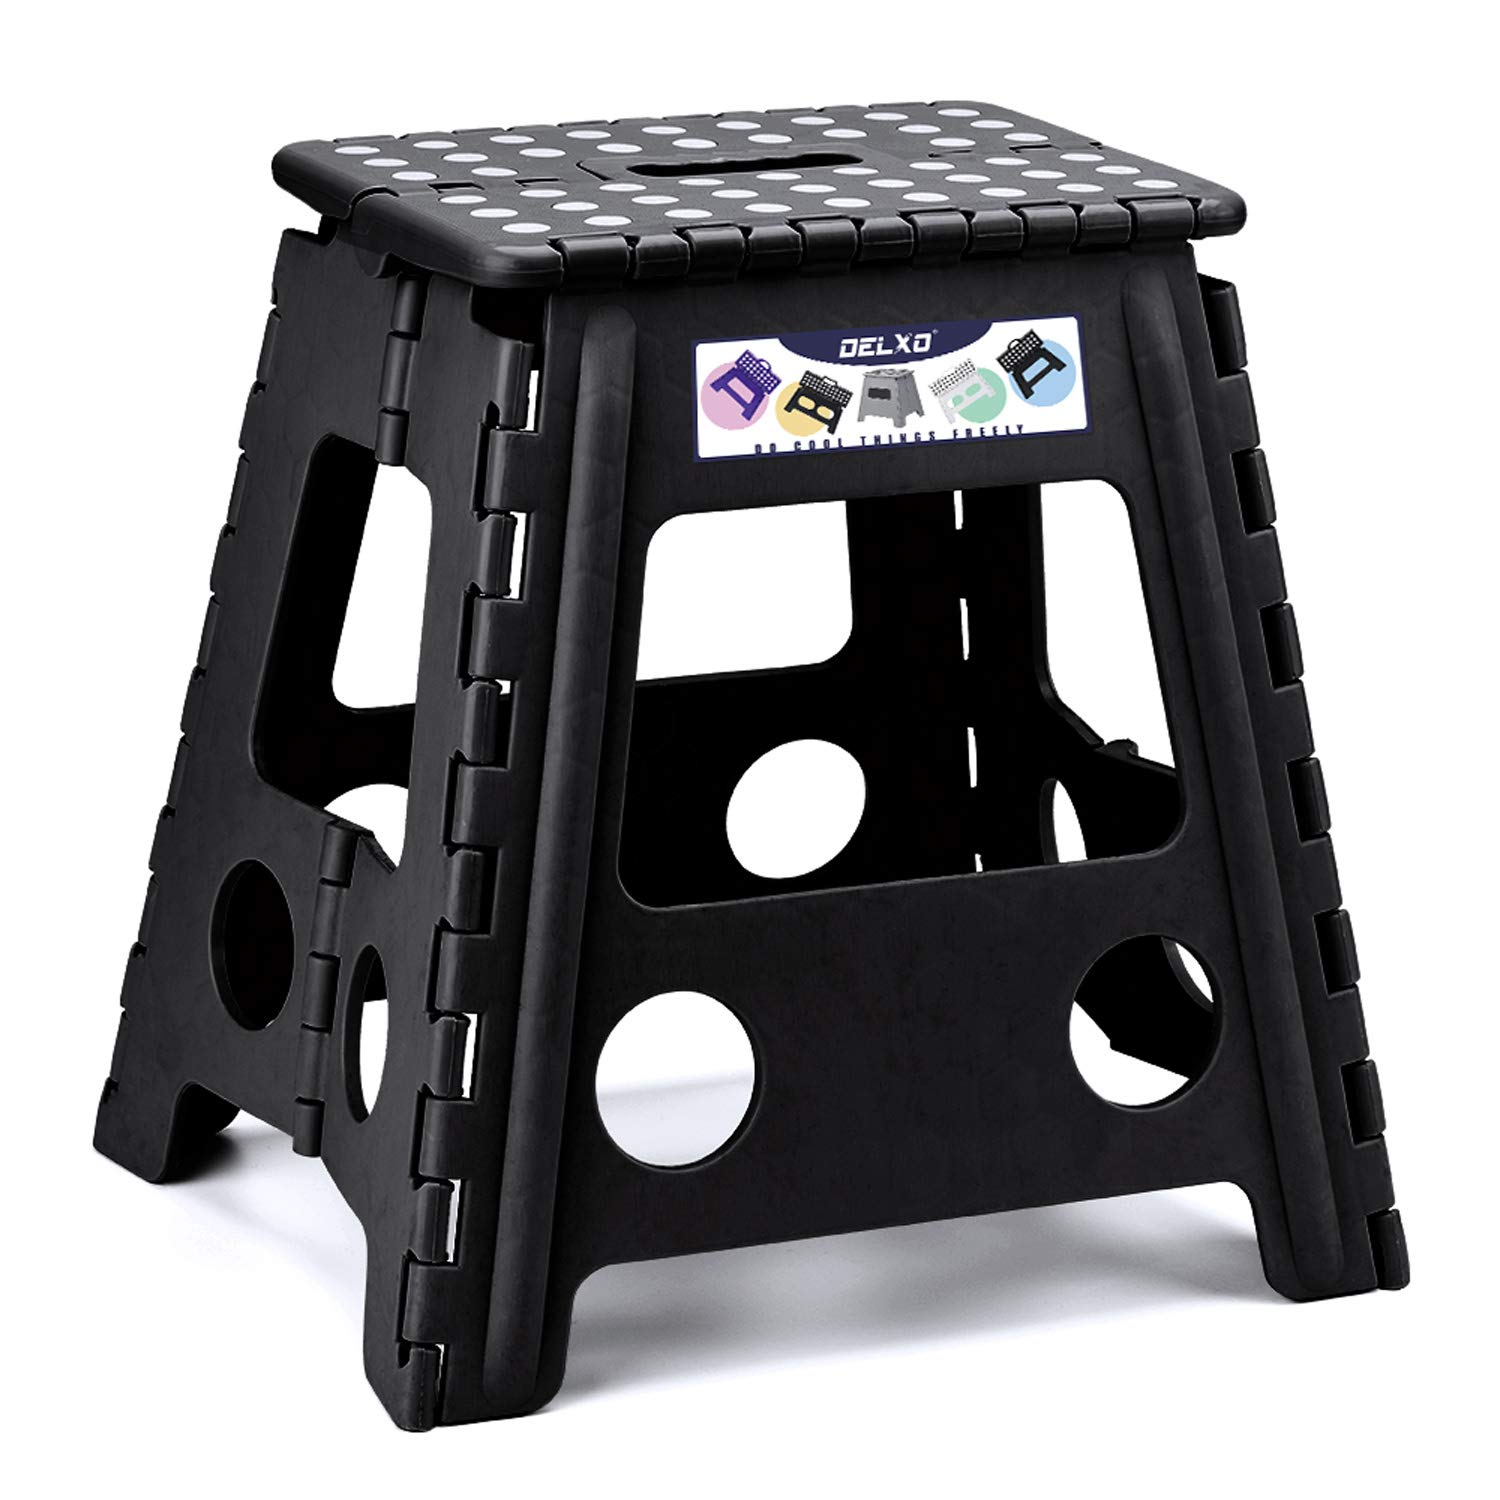 Delxo Folding Step Stool 16 inch Plastic Folding Stool,Kitchen Step Stool,Non Slip Foldable Step Stool for Adults,Plastic Stepping Stool,Black by Delxo